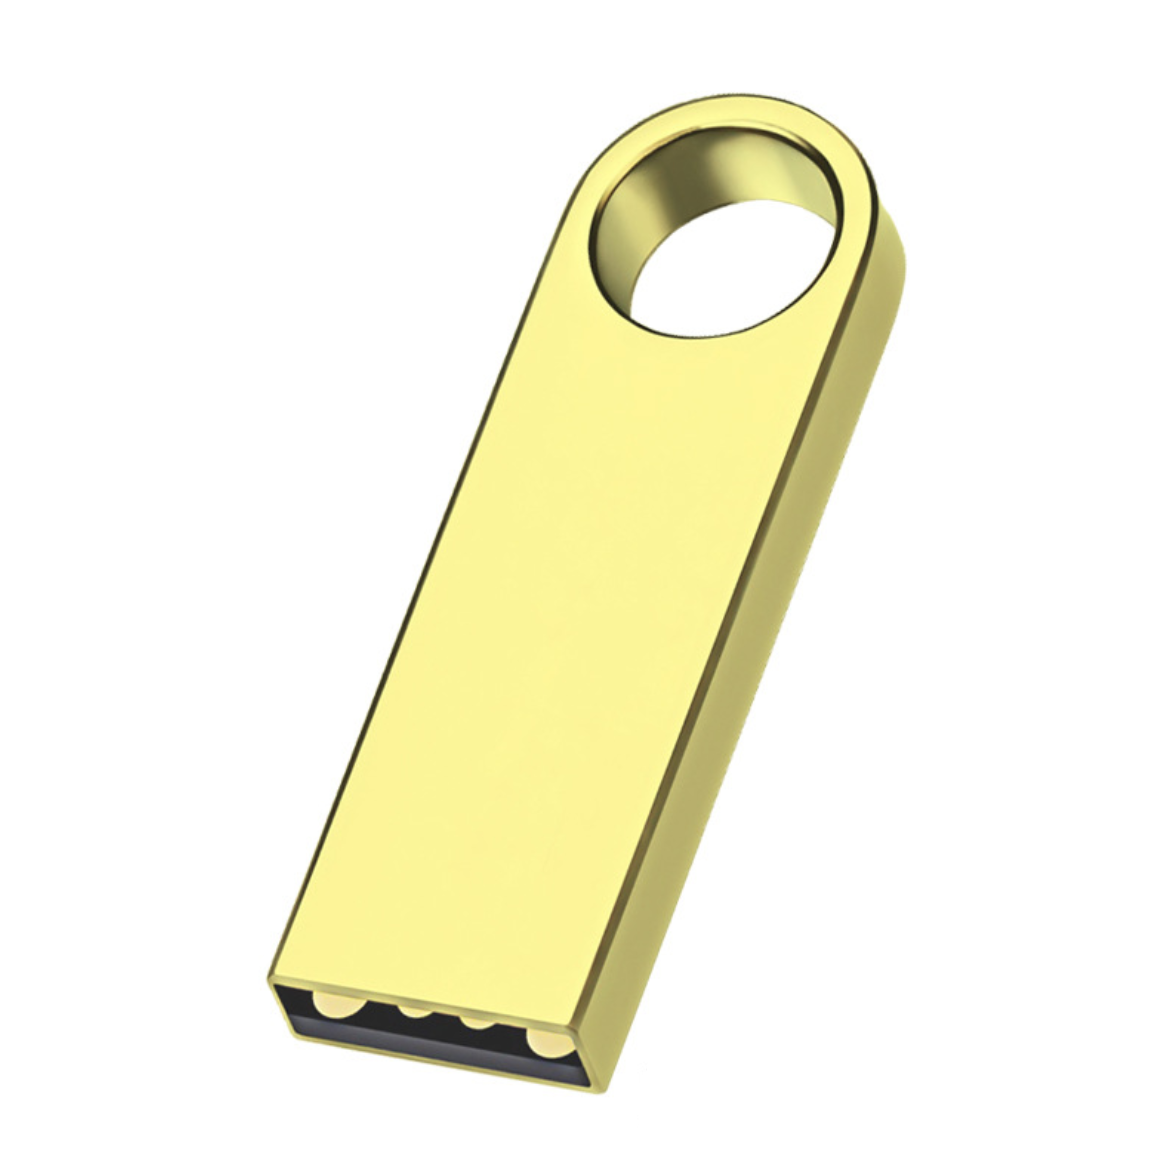 2019 Promotional Wholesale Usb Flash Drive 1GB  with Custom Logo